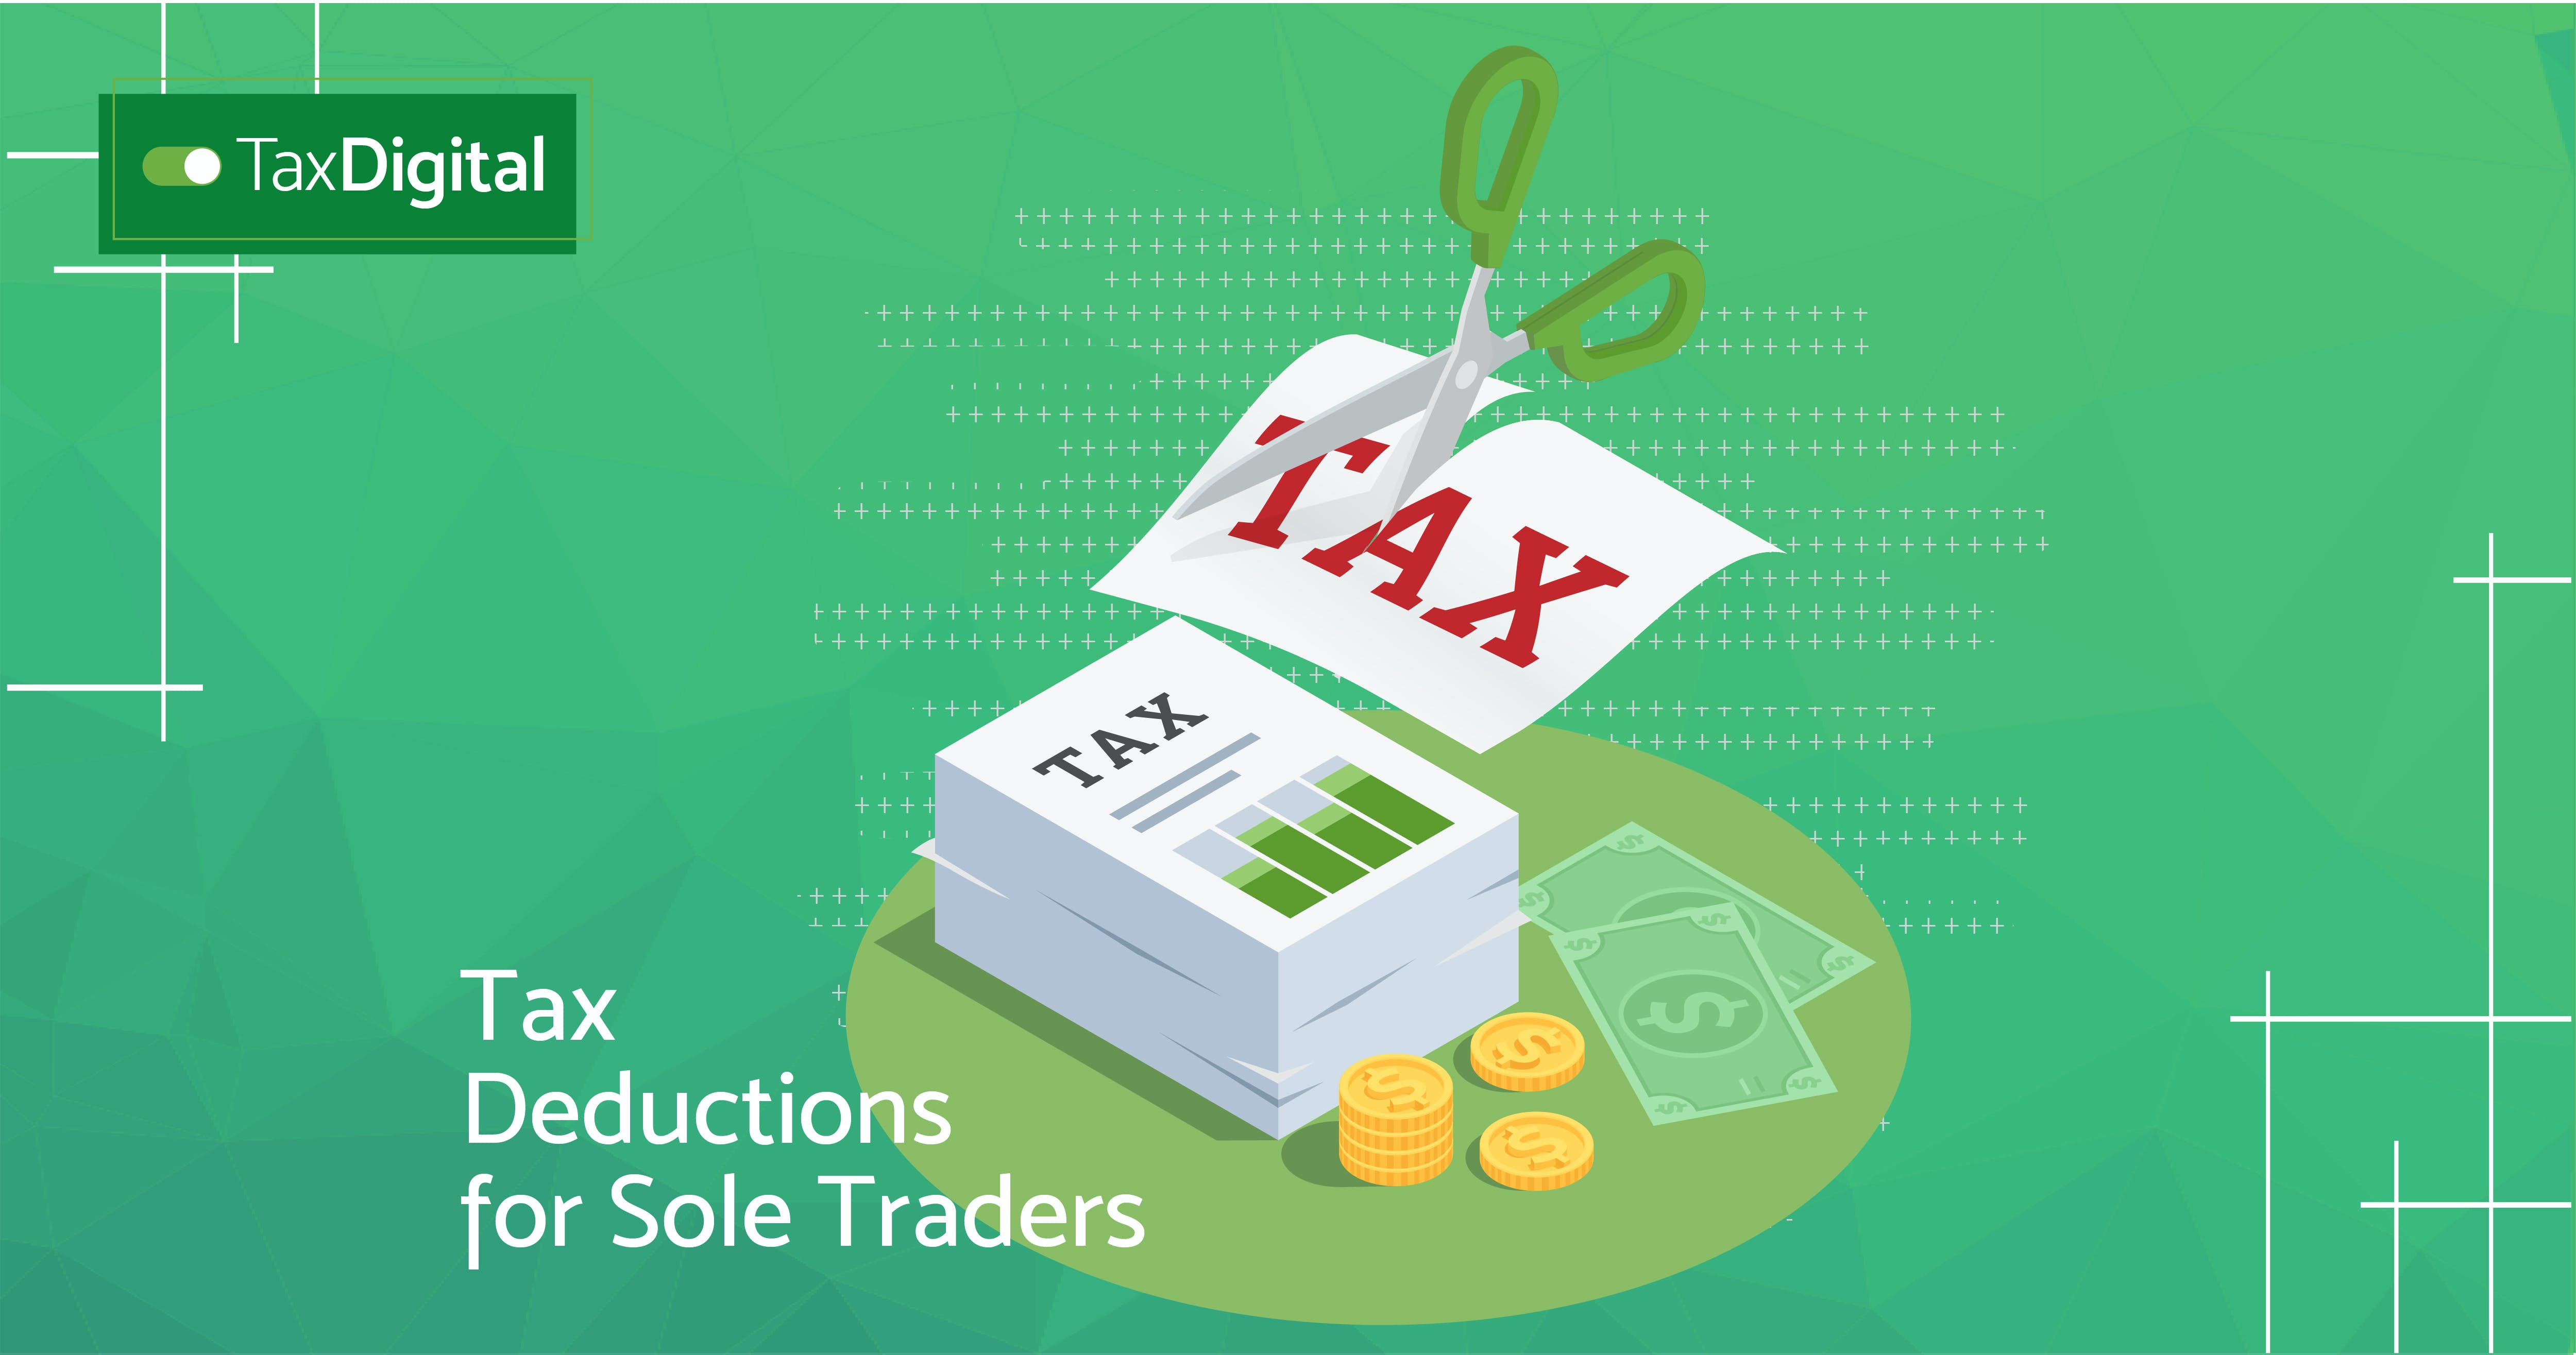 Tax Deductions for Sole Traders - Social Image